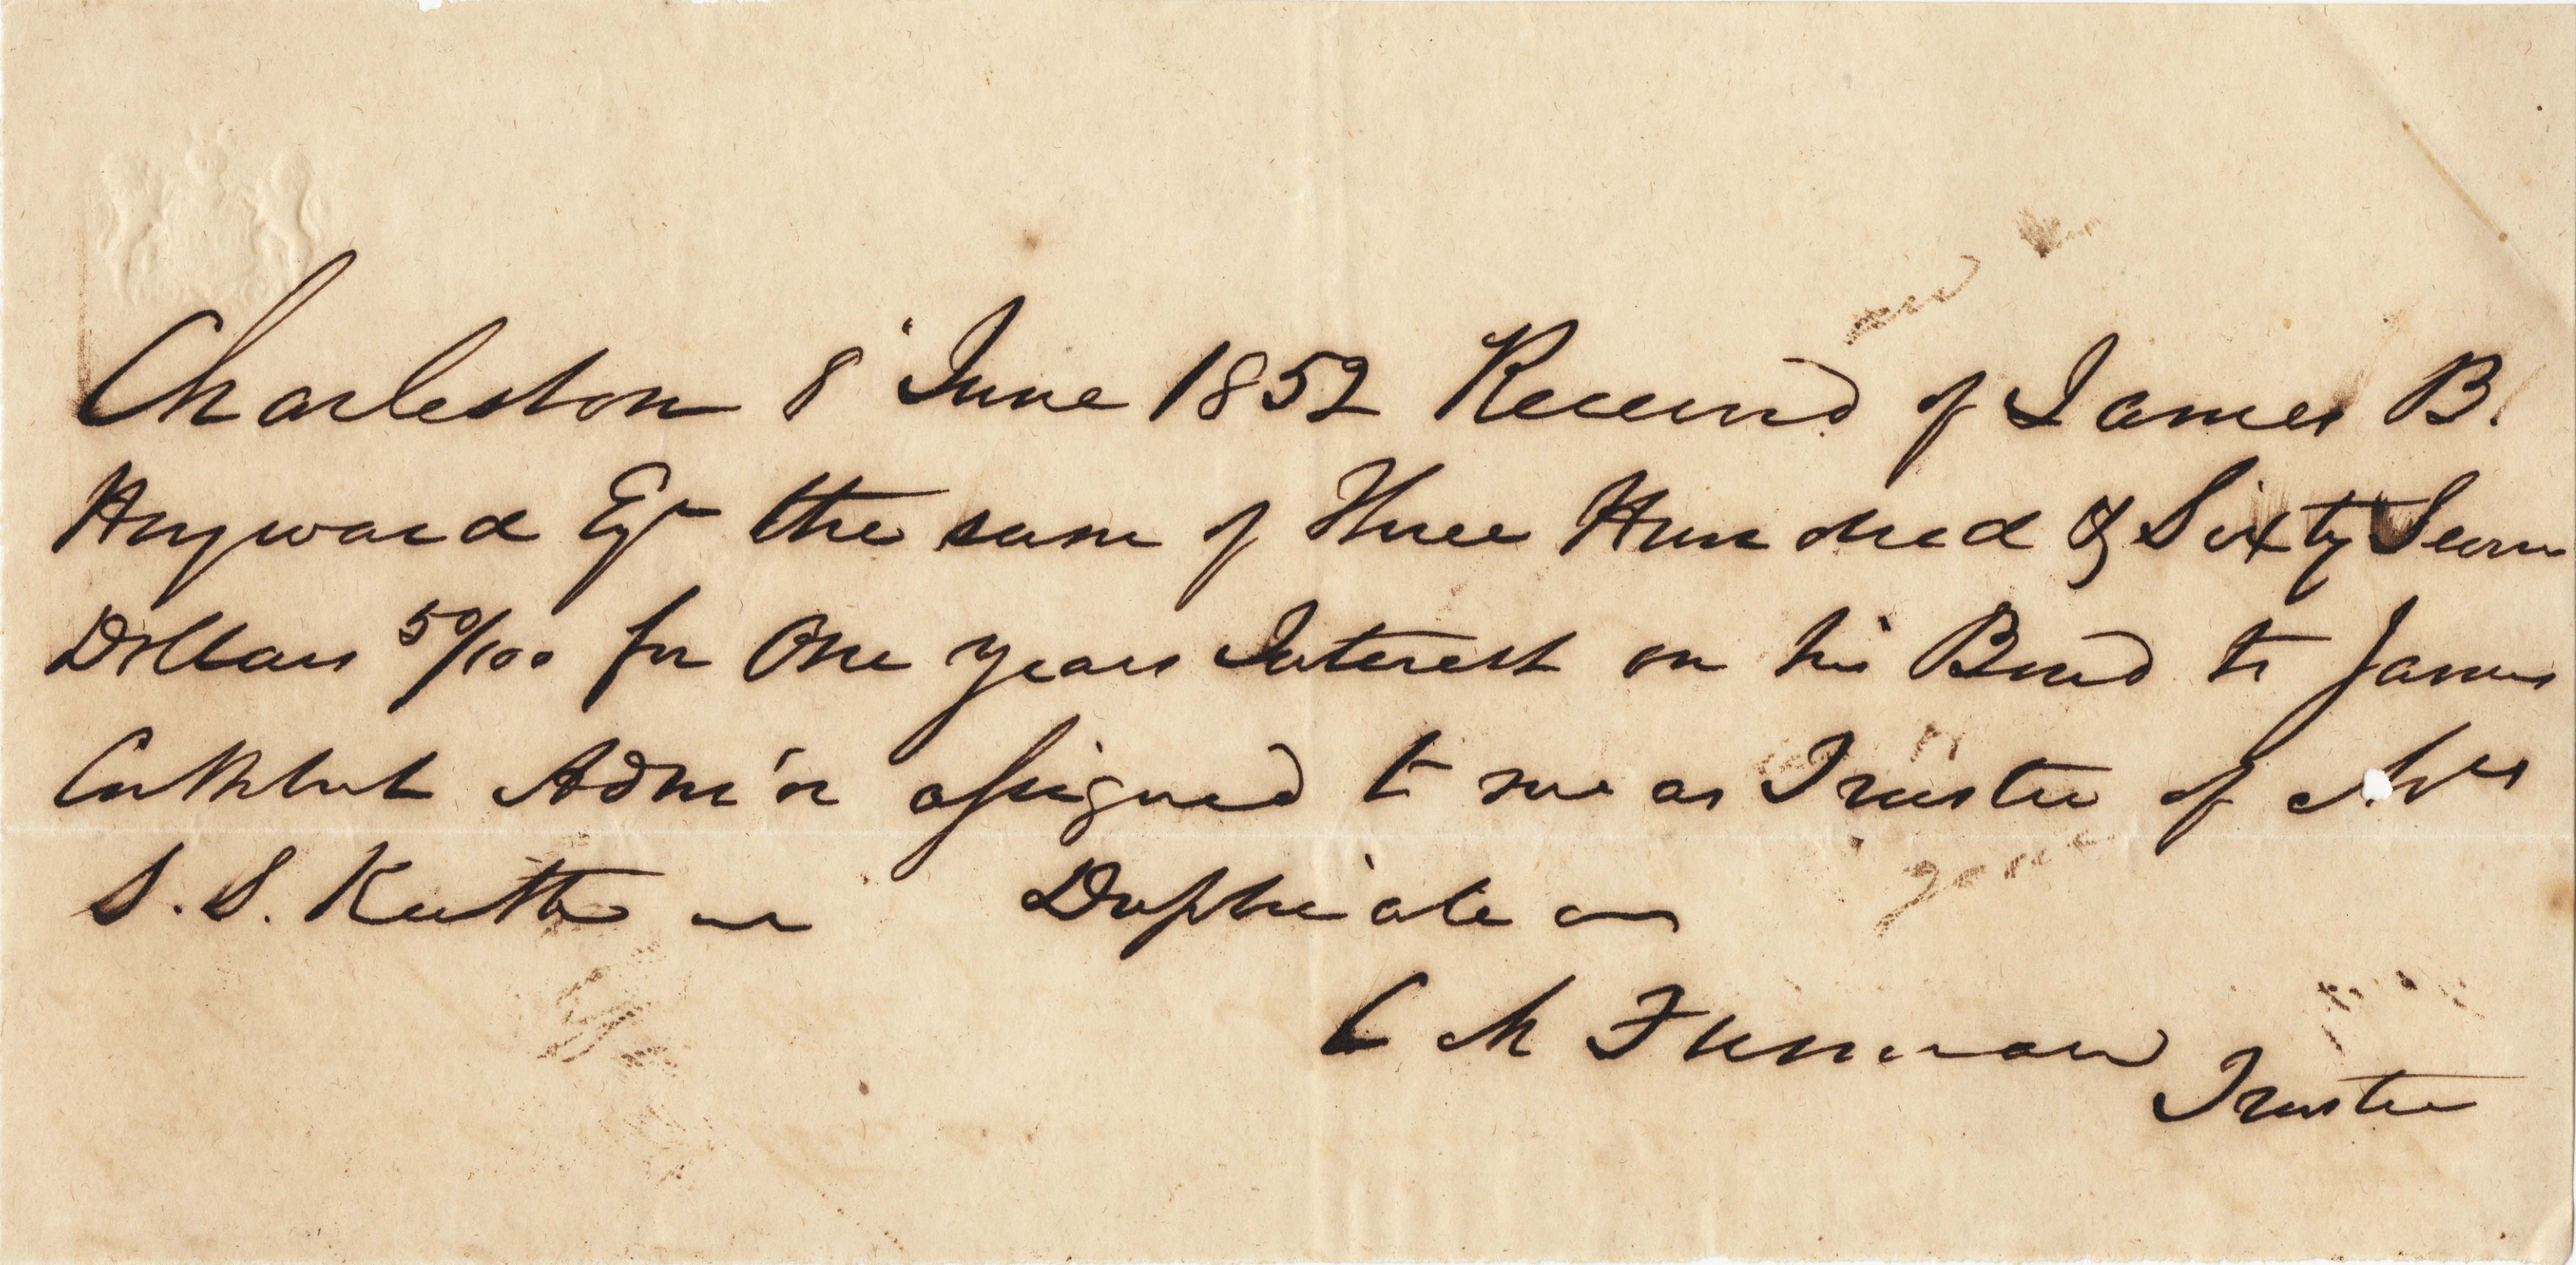 374. Miscellaneous receipts from the Heyward and Ferguson families -- 1852-1880